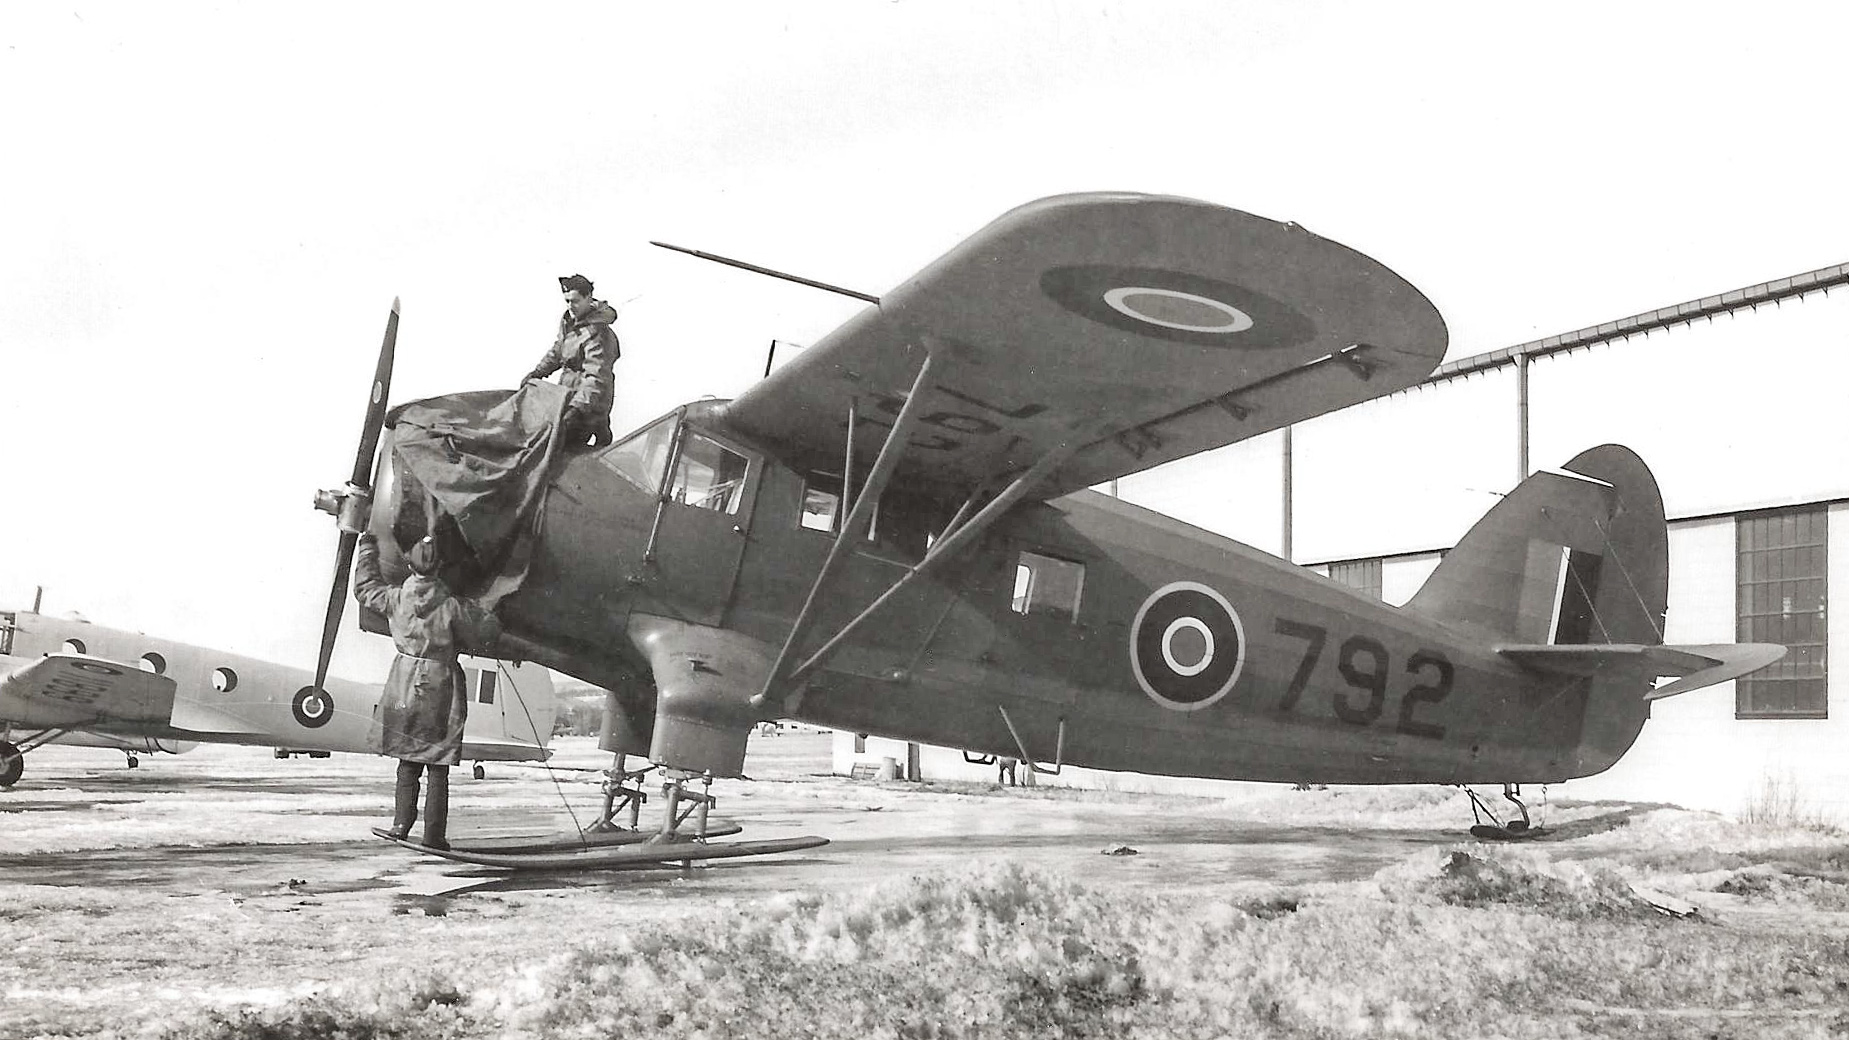 On p.125 of Norseman Vol.1 there's a photo of RCAF Norseman 792